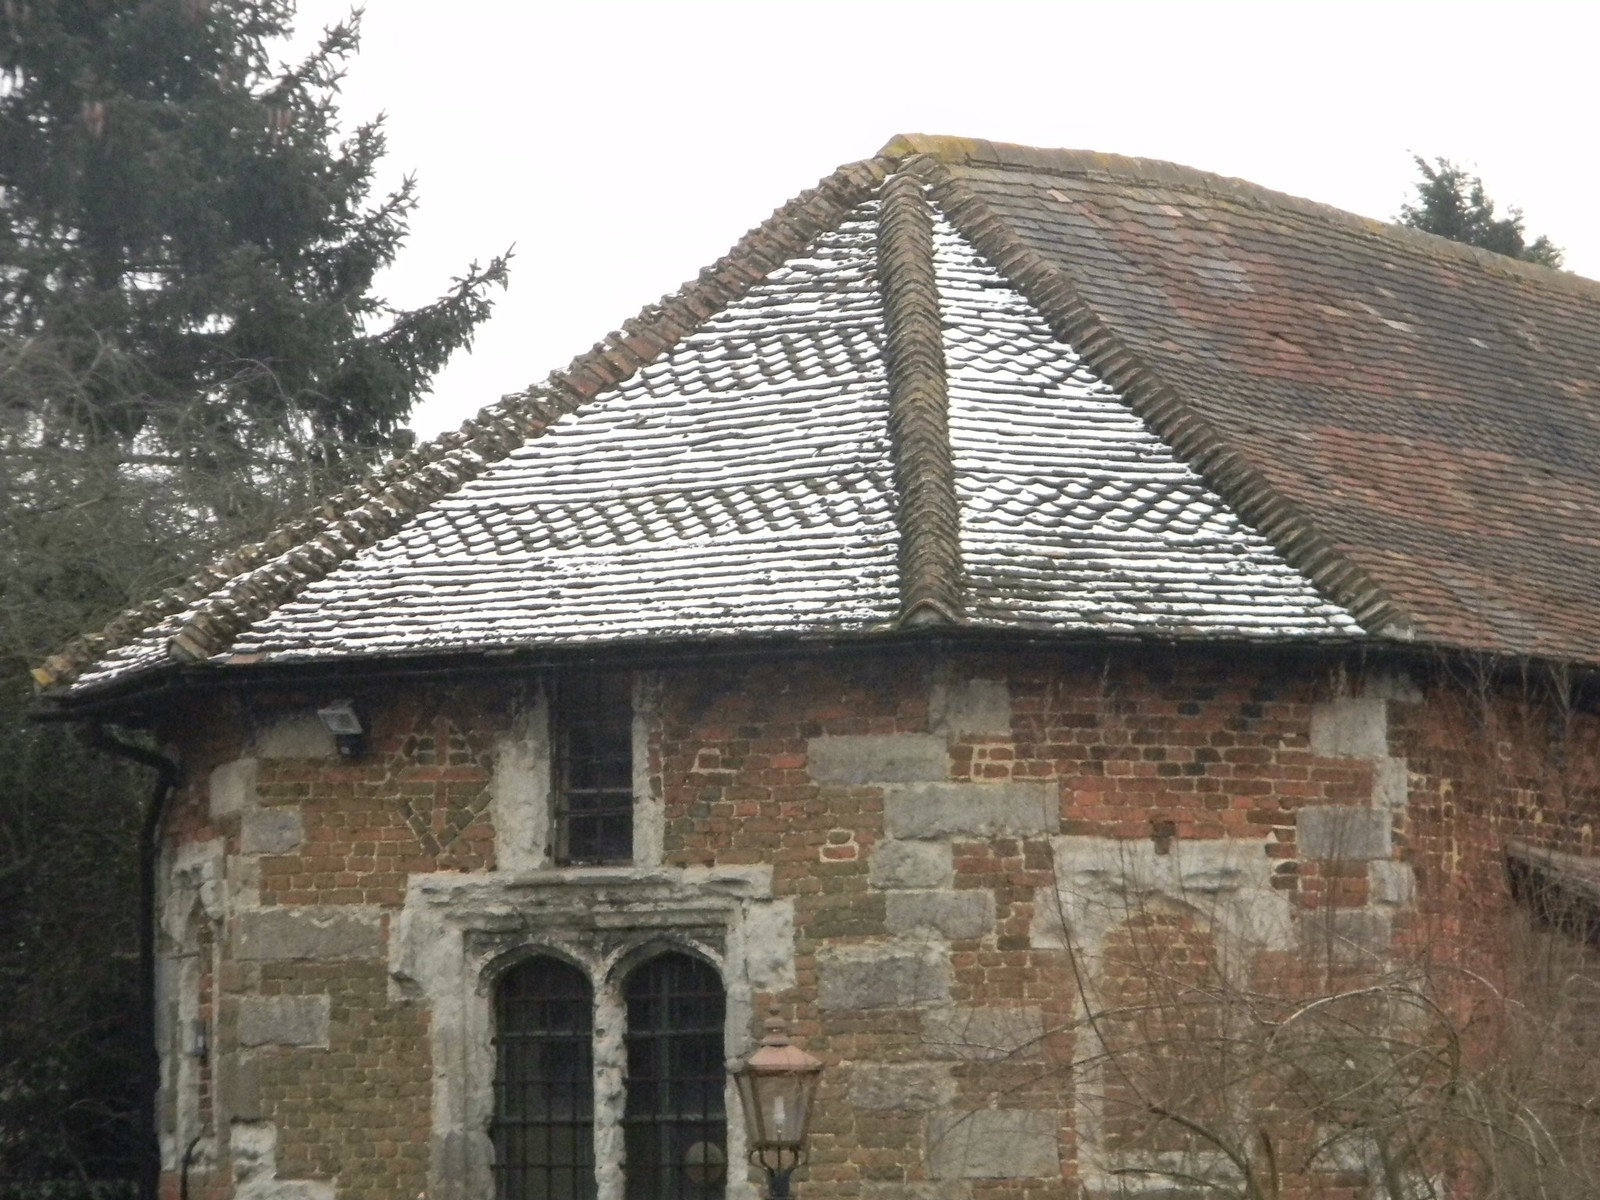 Frosty tiles Frost picks out the tile pattern on the roof. Next to Archbishops Palace, Otford. Eynsford Circular